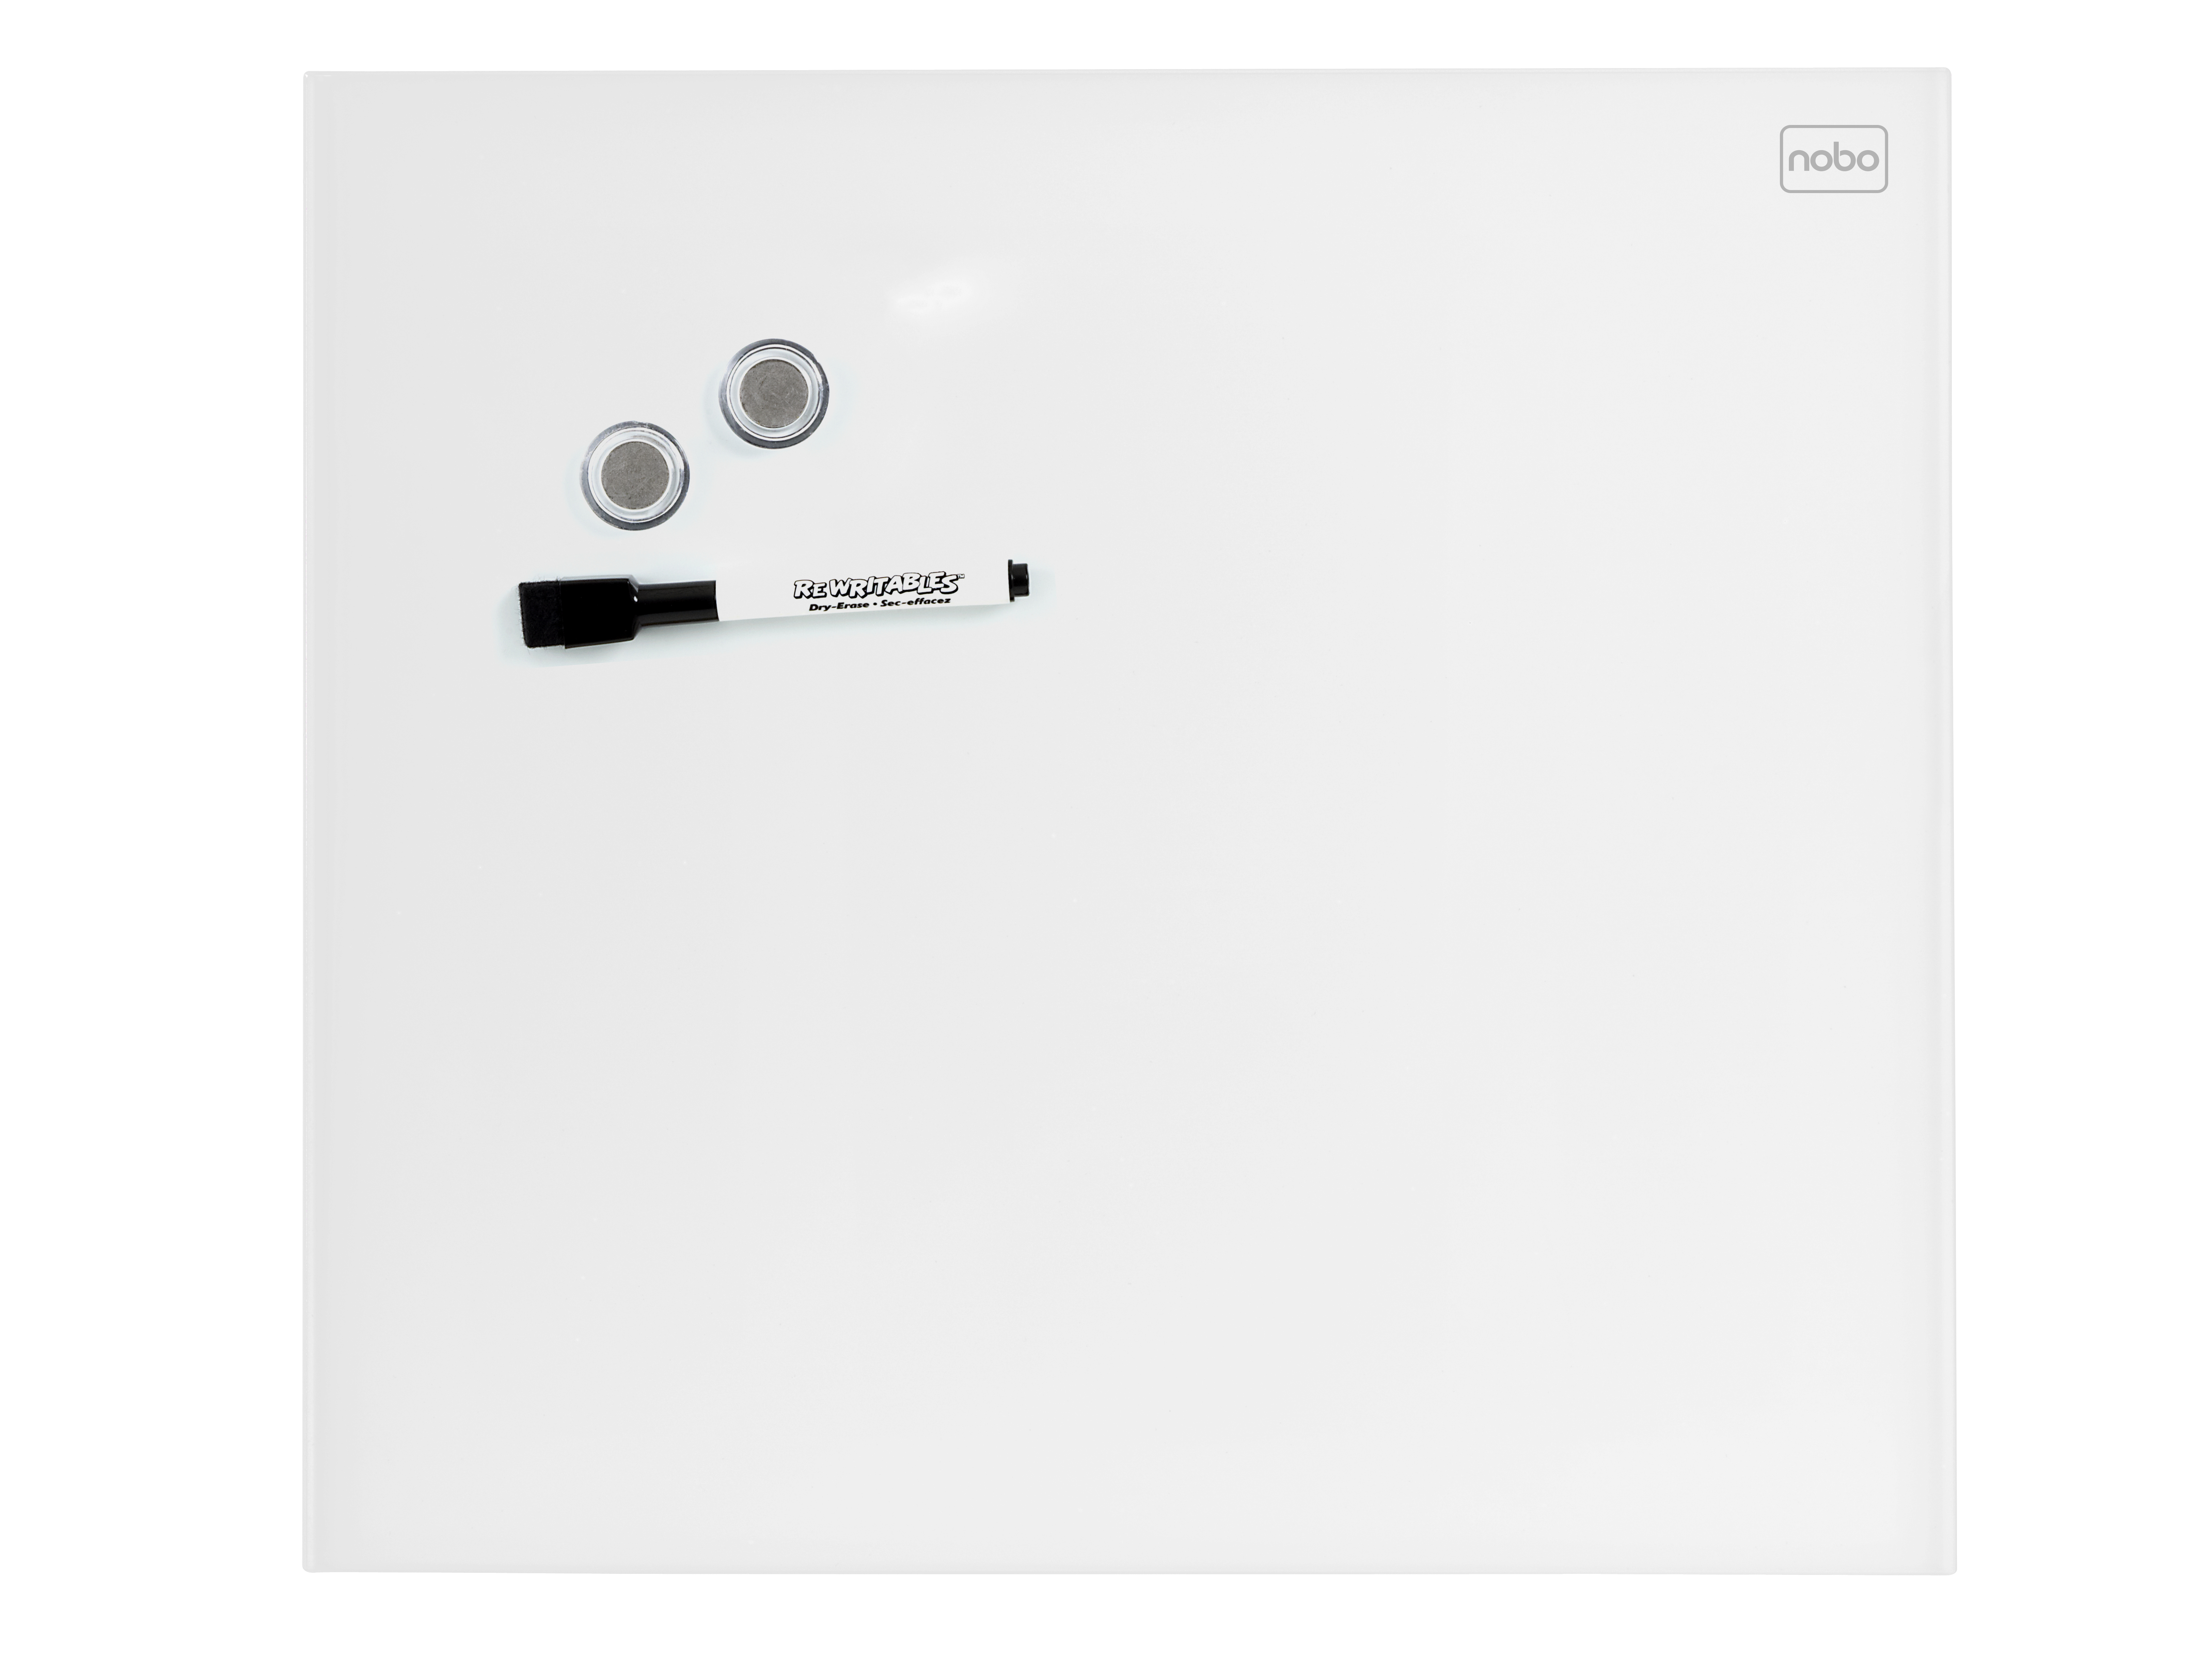 acco Nobo Diamond Drywipe Board Magnetic 300x300mm White Dd 1903956 - AD01